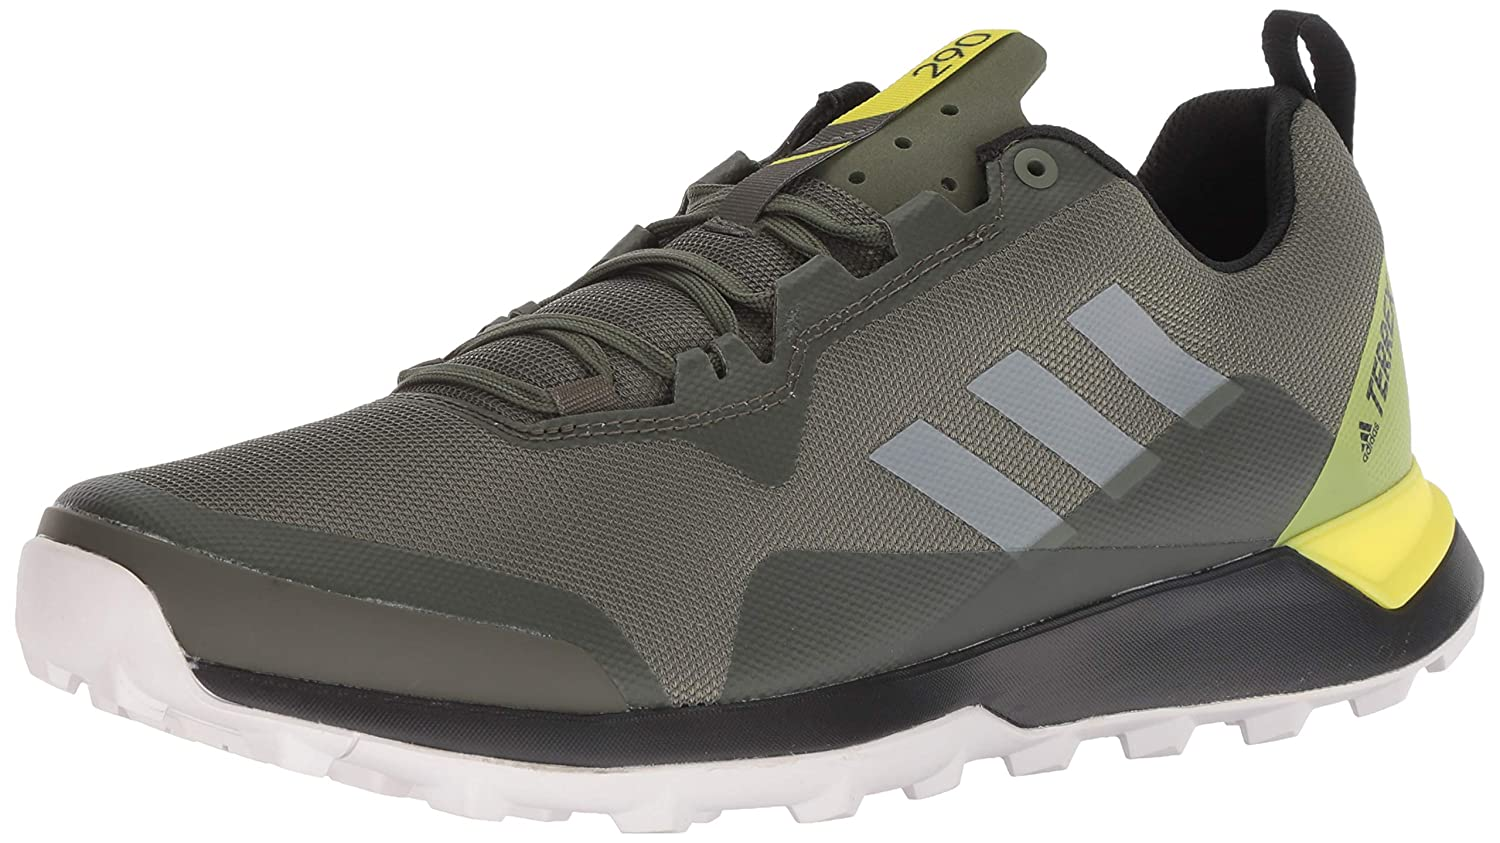 Adidas outdoor mens terrex walking shoe walking jpg 1500x843 Adidas terrex  cmtk 31ae83e7d